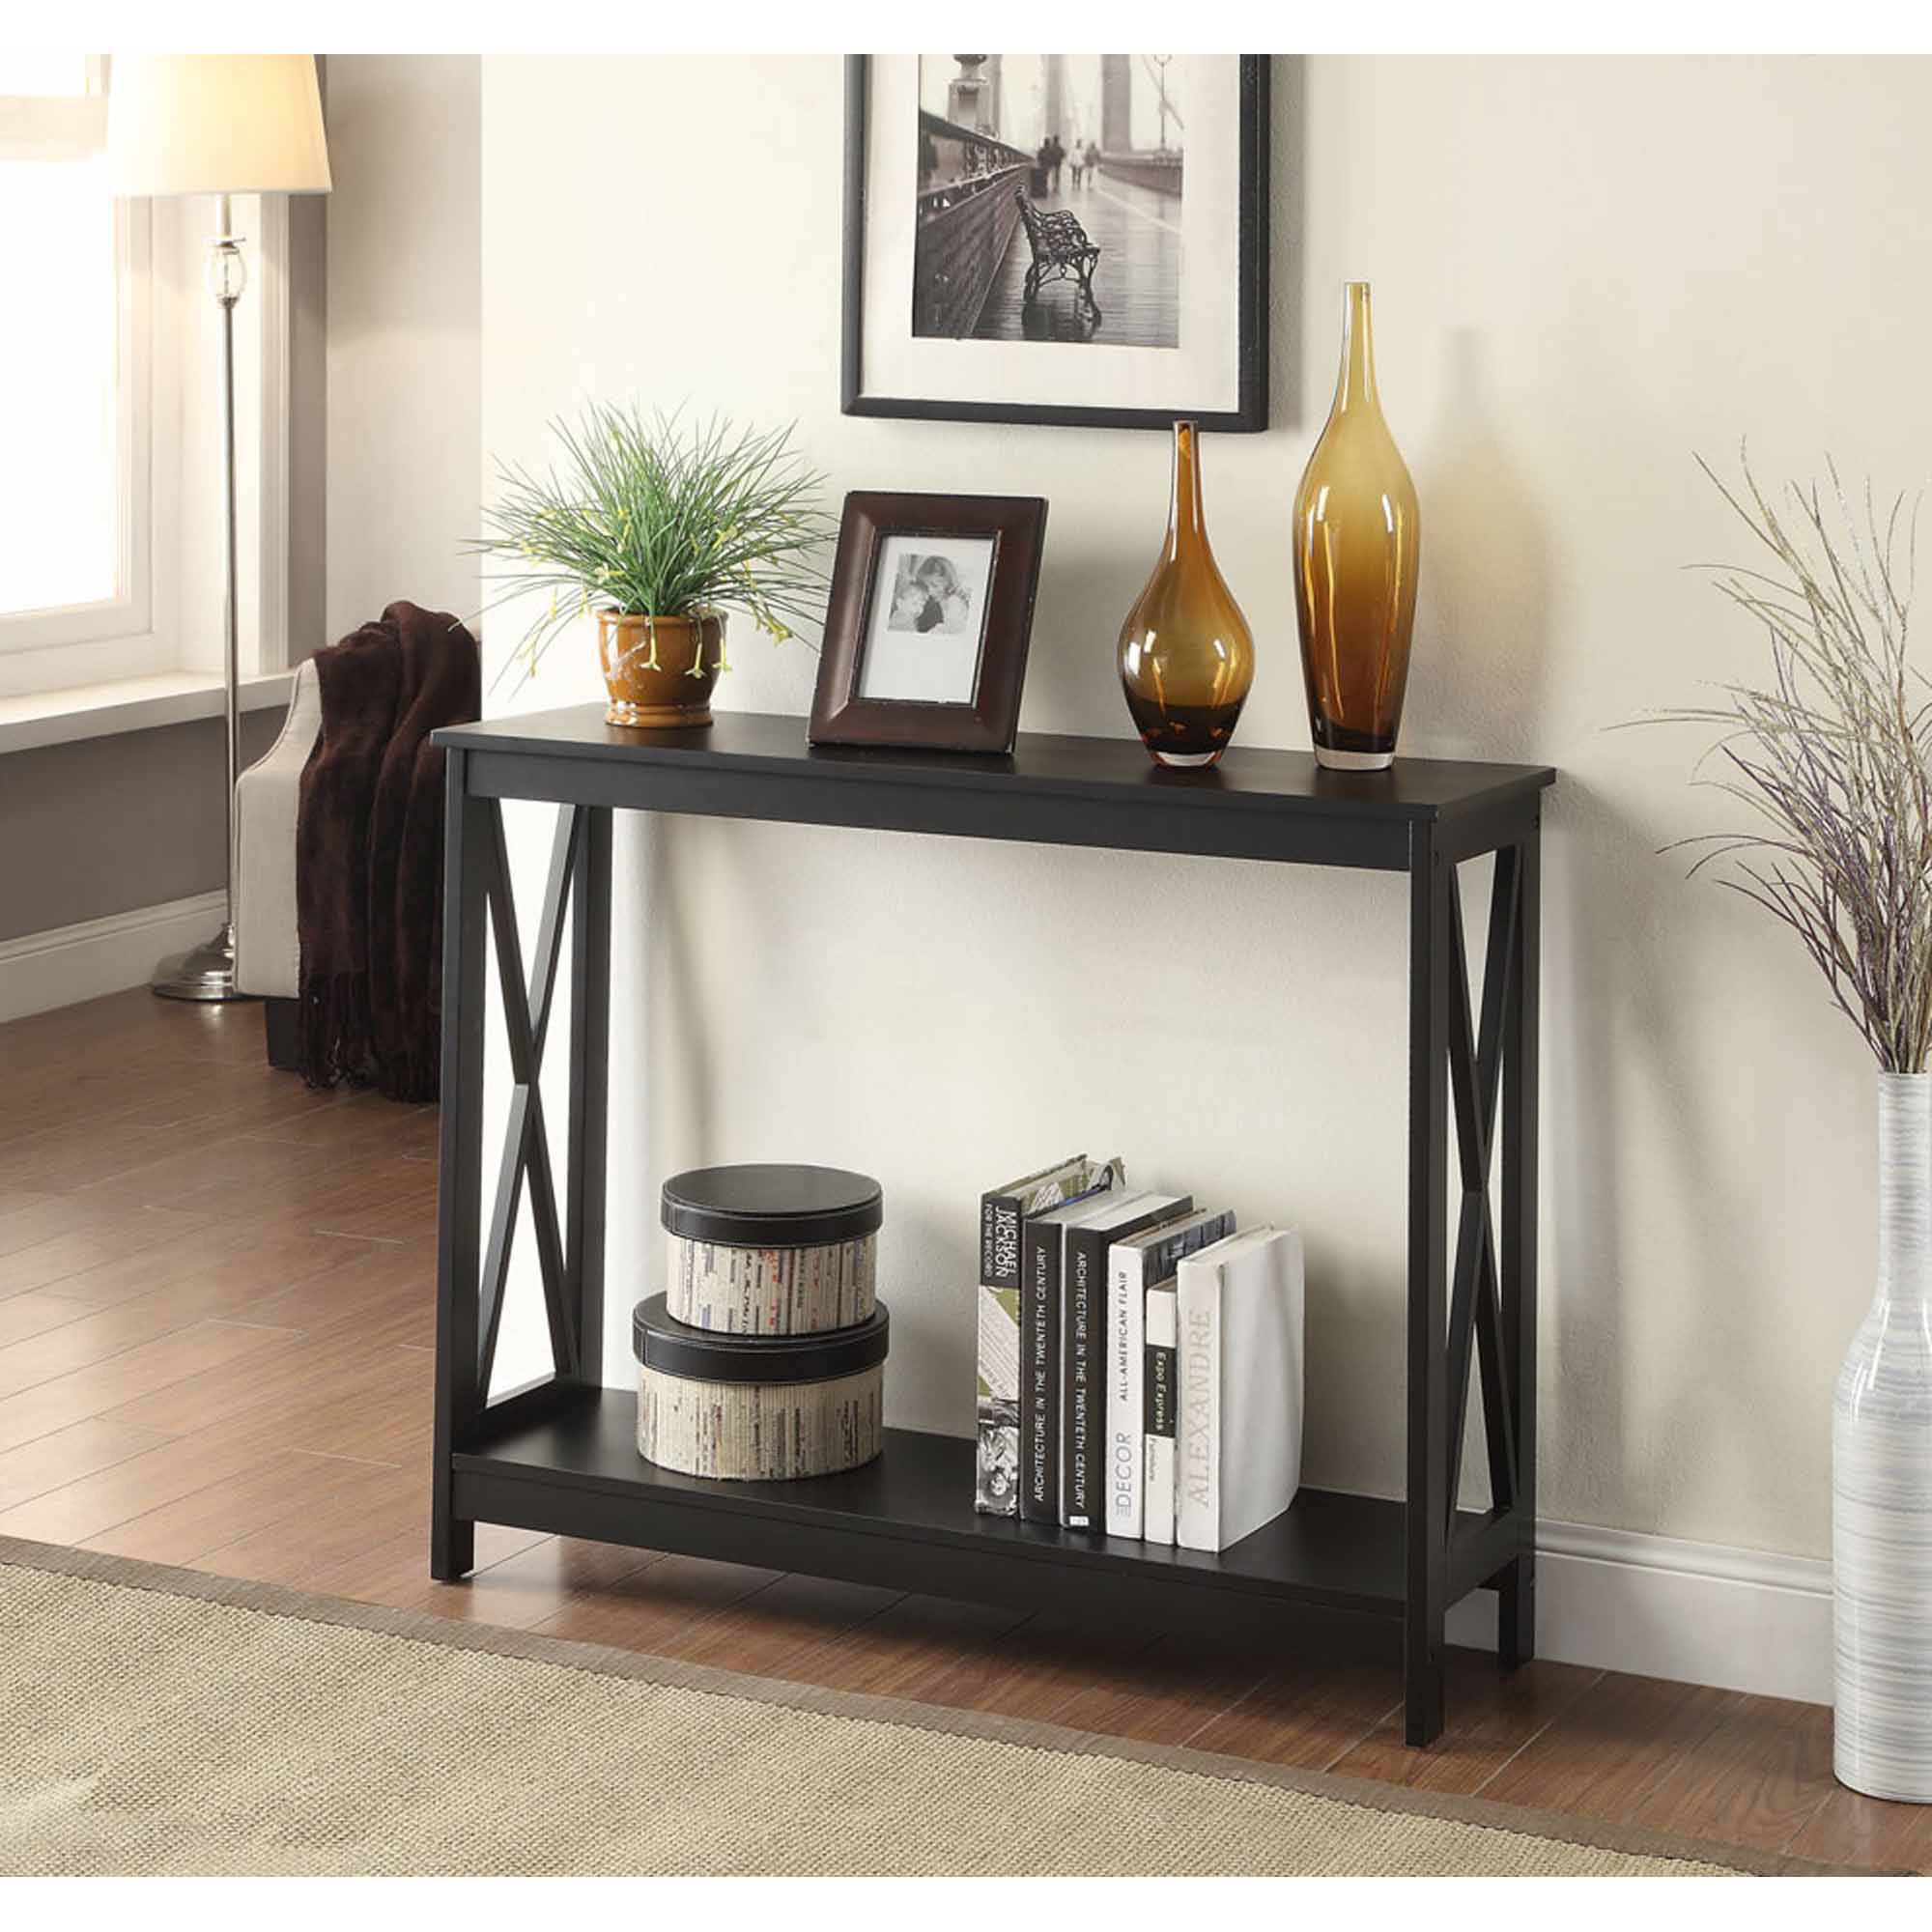 delightful espresso finish console table marb wood behind decoration oak and small reflections color tures marble ferndale nate ideas brown pretty dark decorating white height